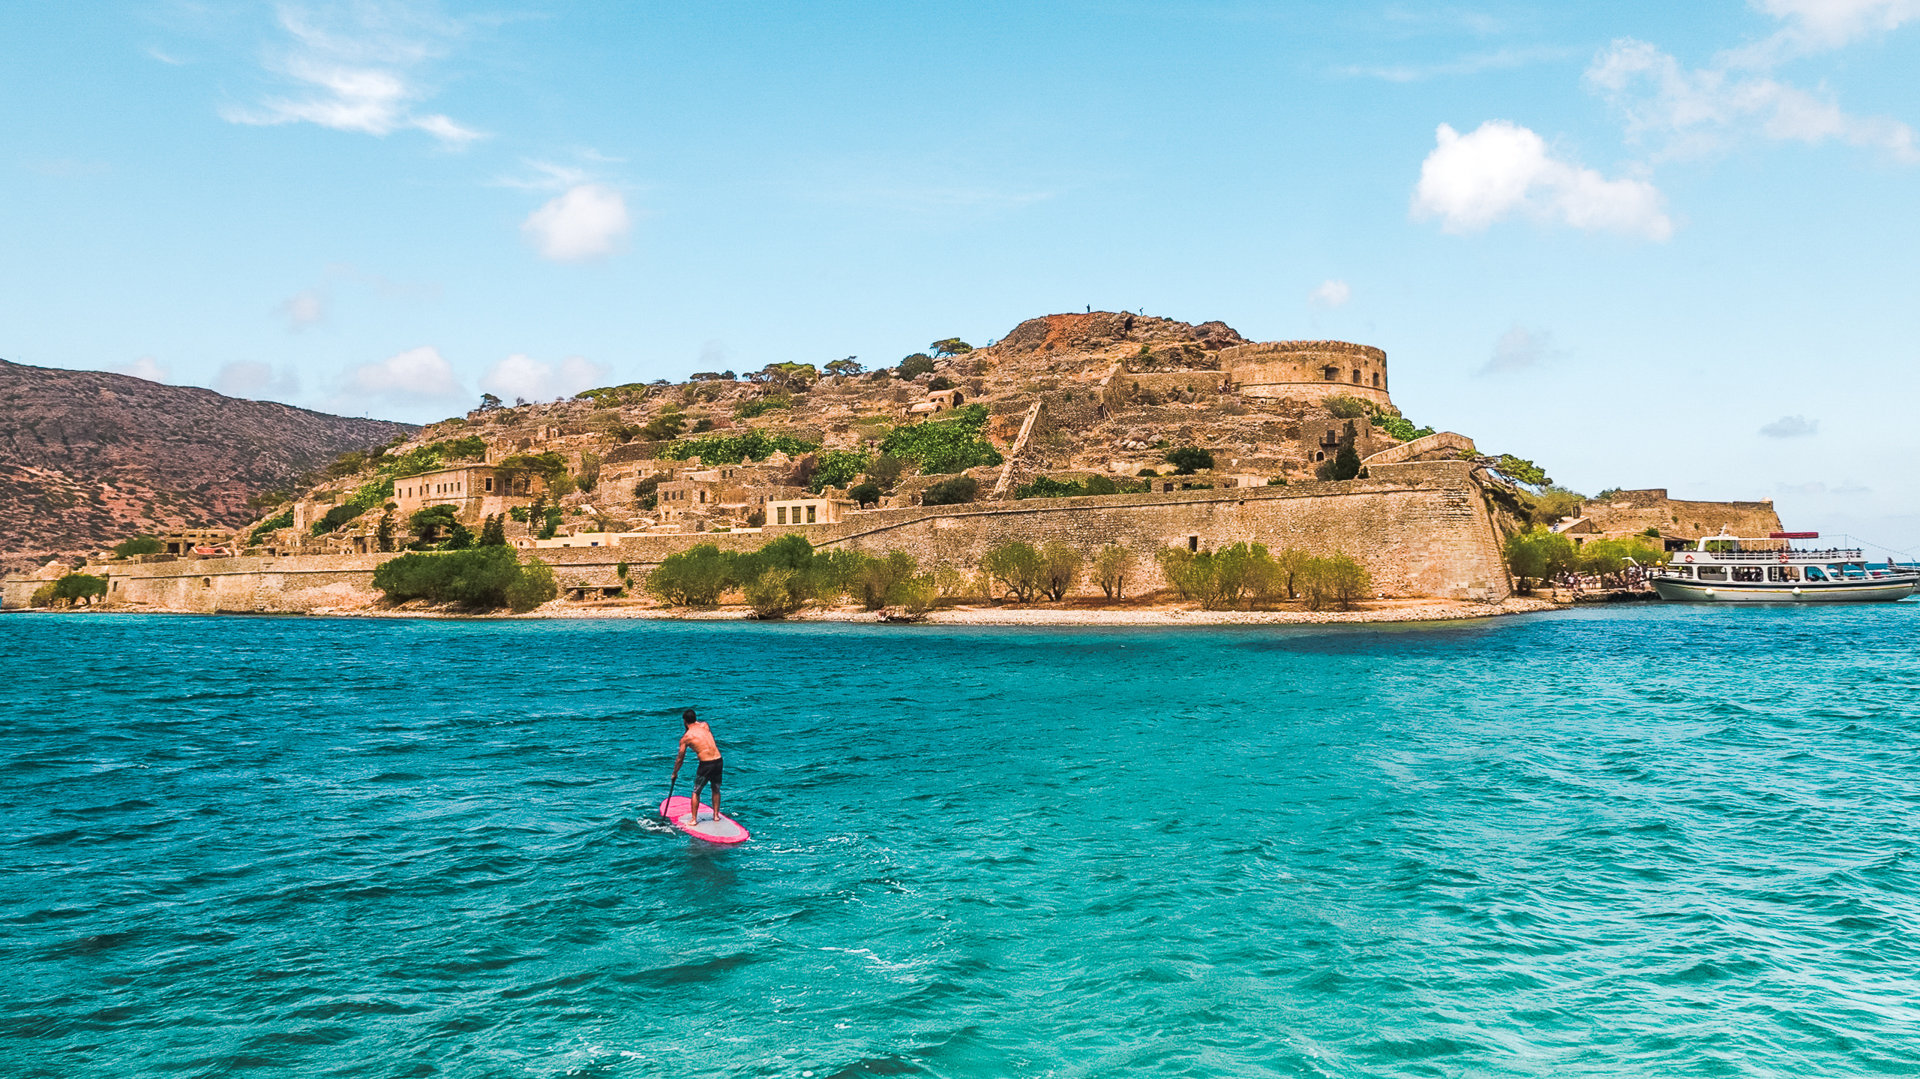 SUP in Spinalonga island